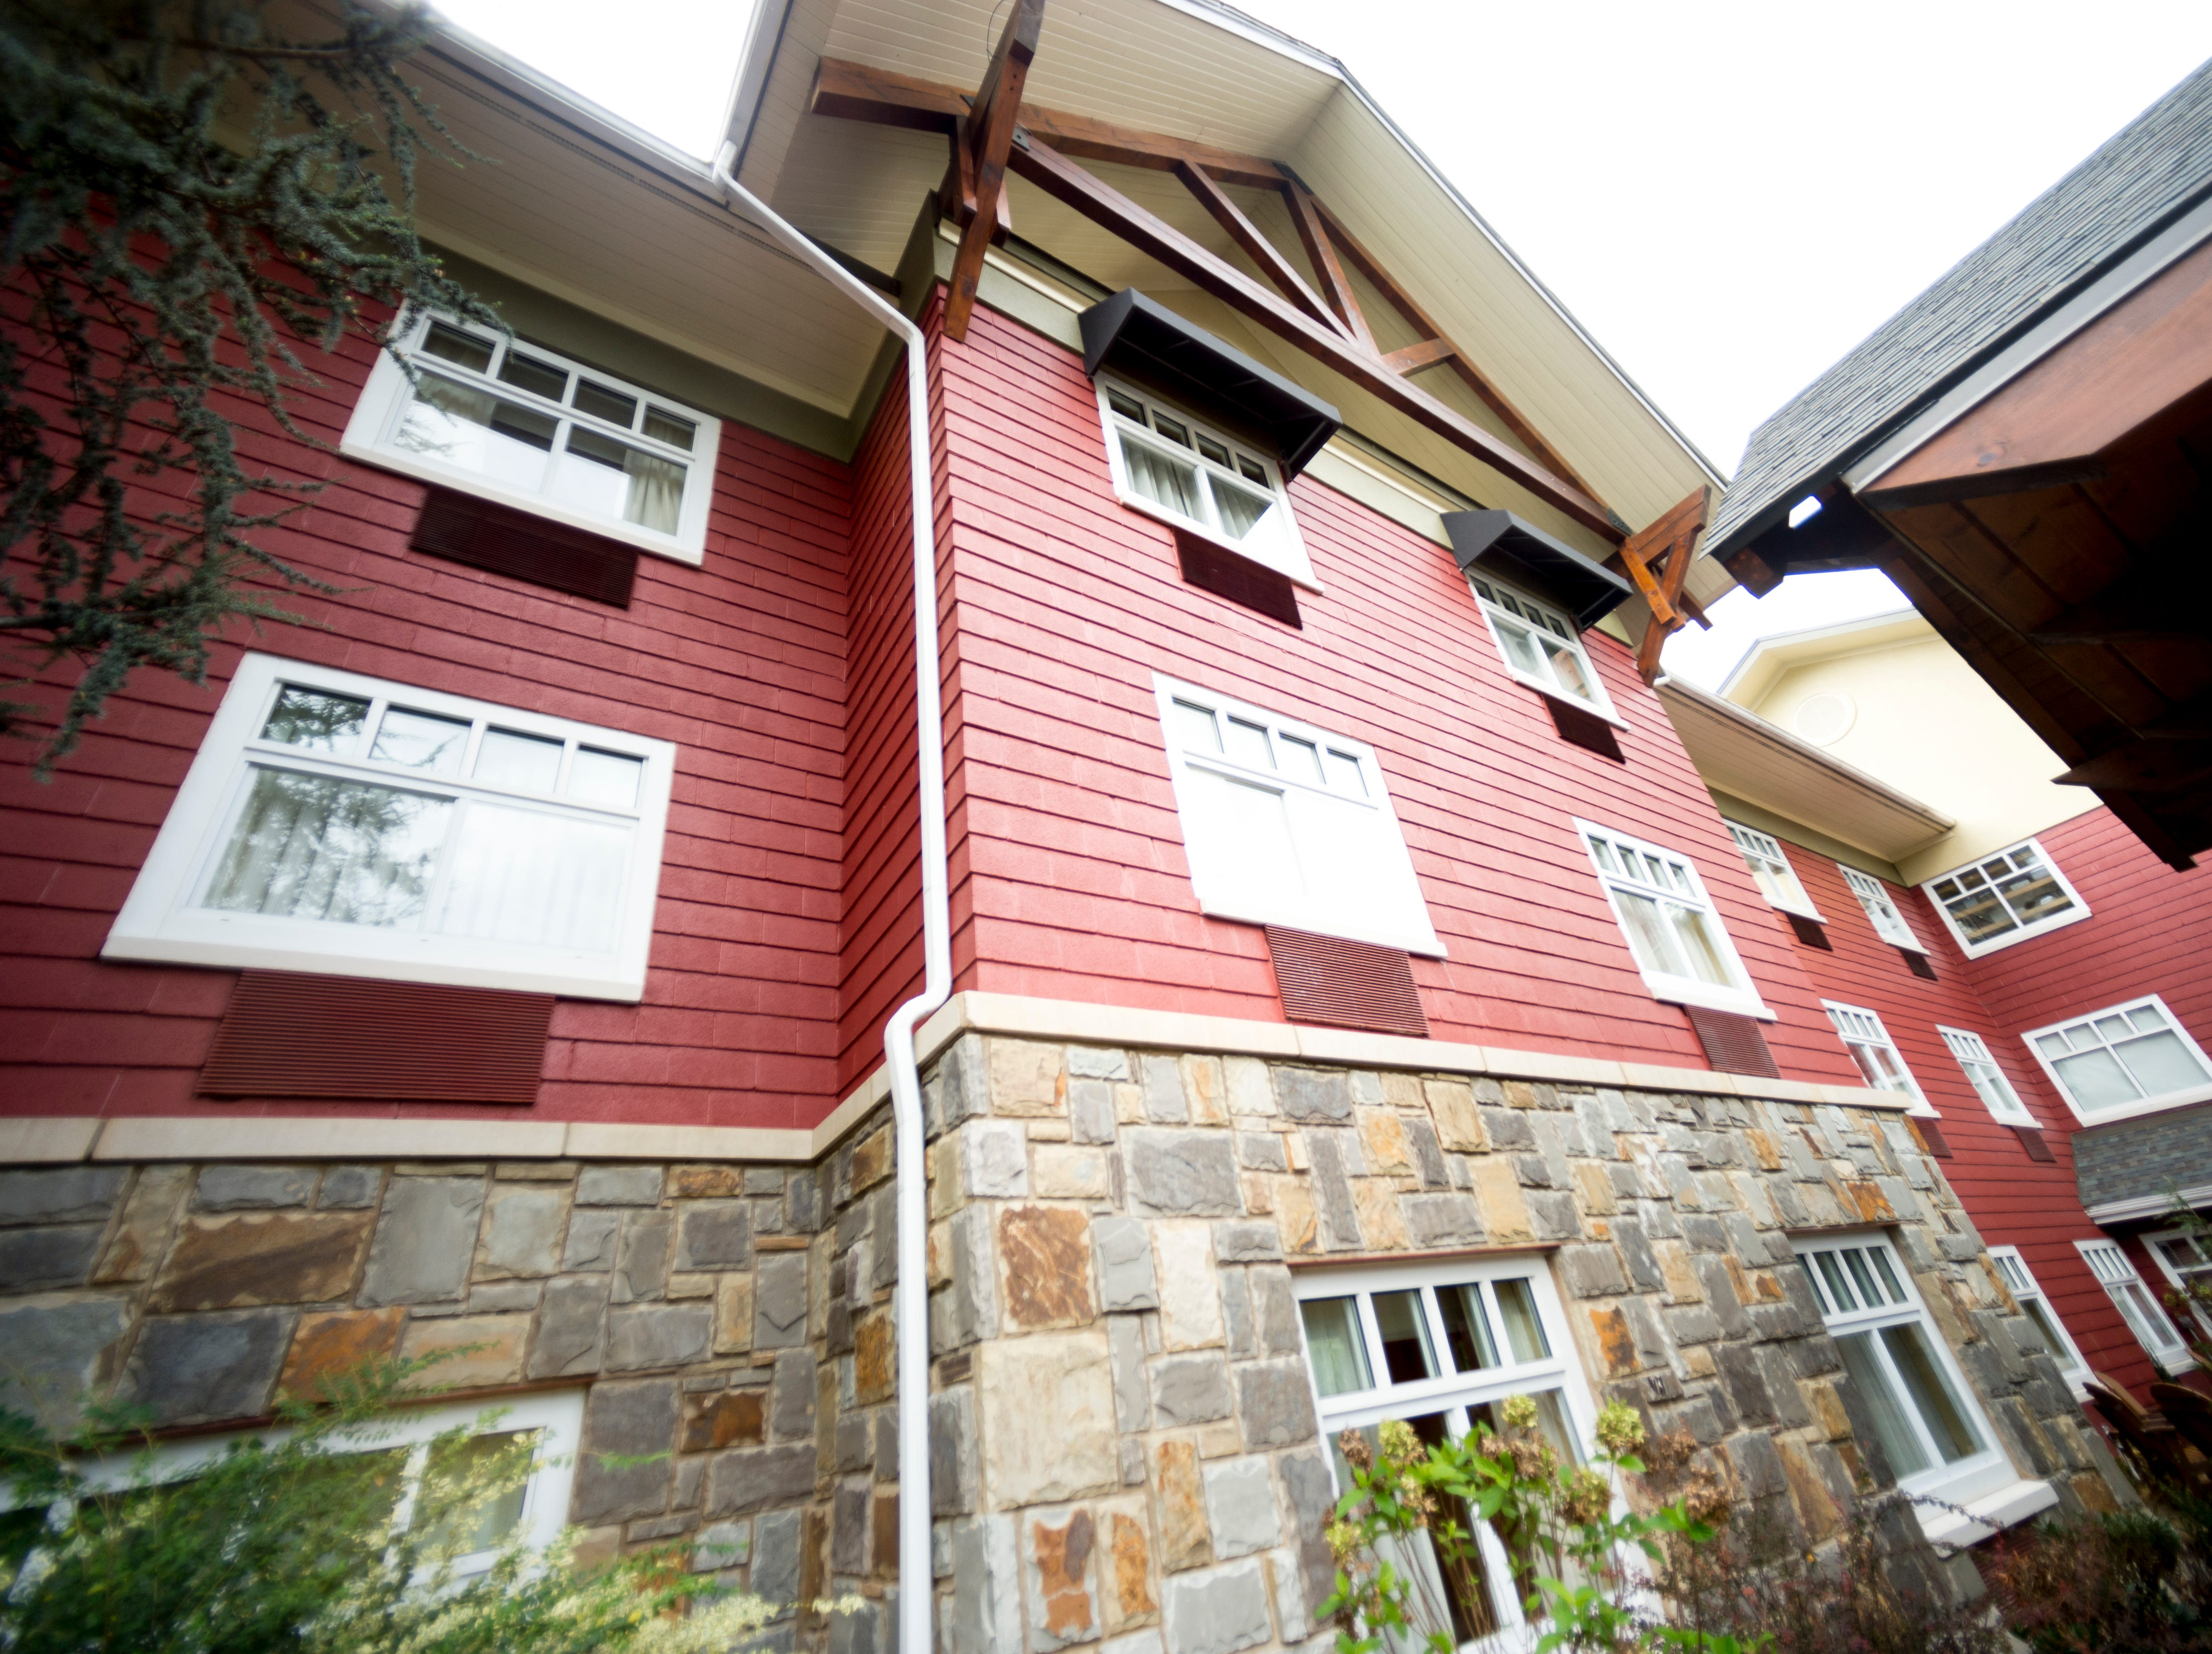 Red paneling across The Appy Lodge in Gatlinburg, Tennessee on Tuesday, September 18, 2018. The hotel partnered with Appalachian organizations to create a Appalachian Trail theme.